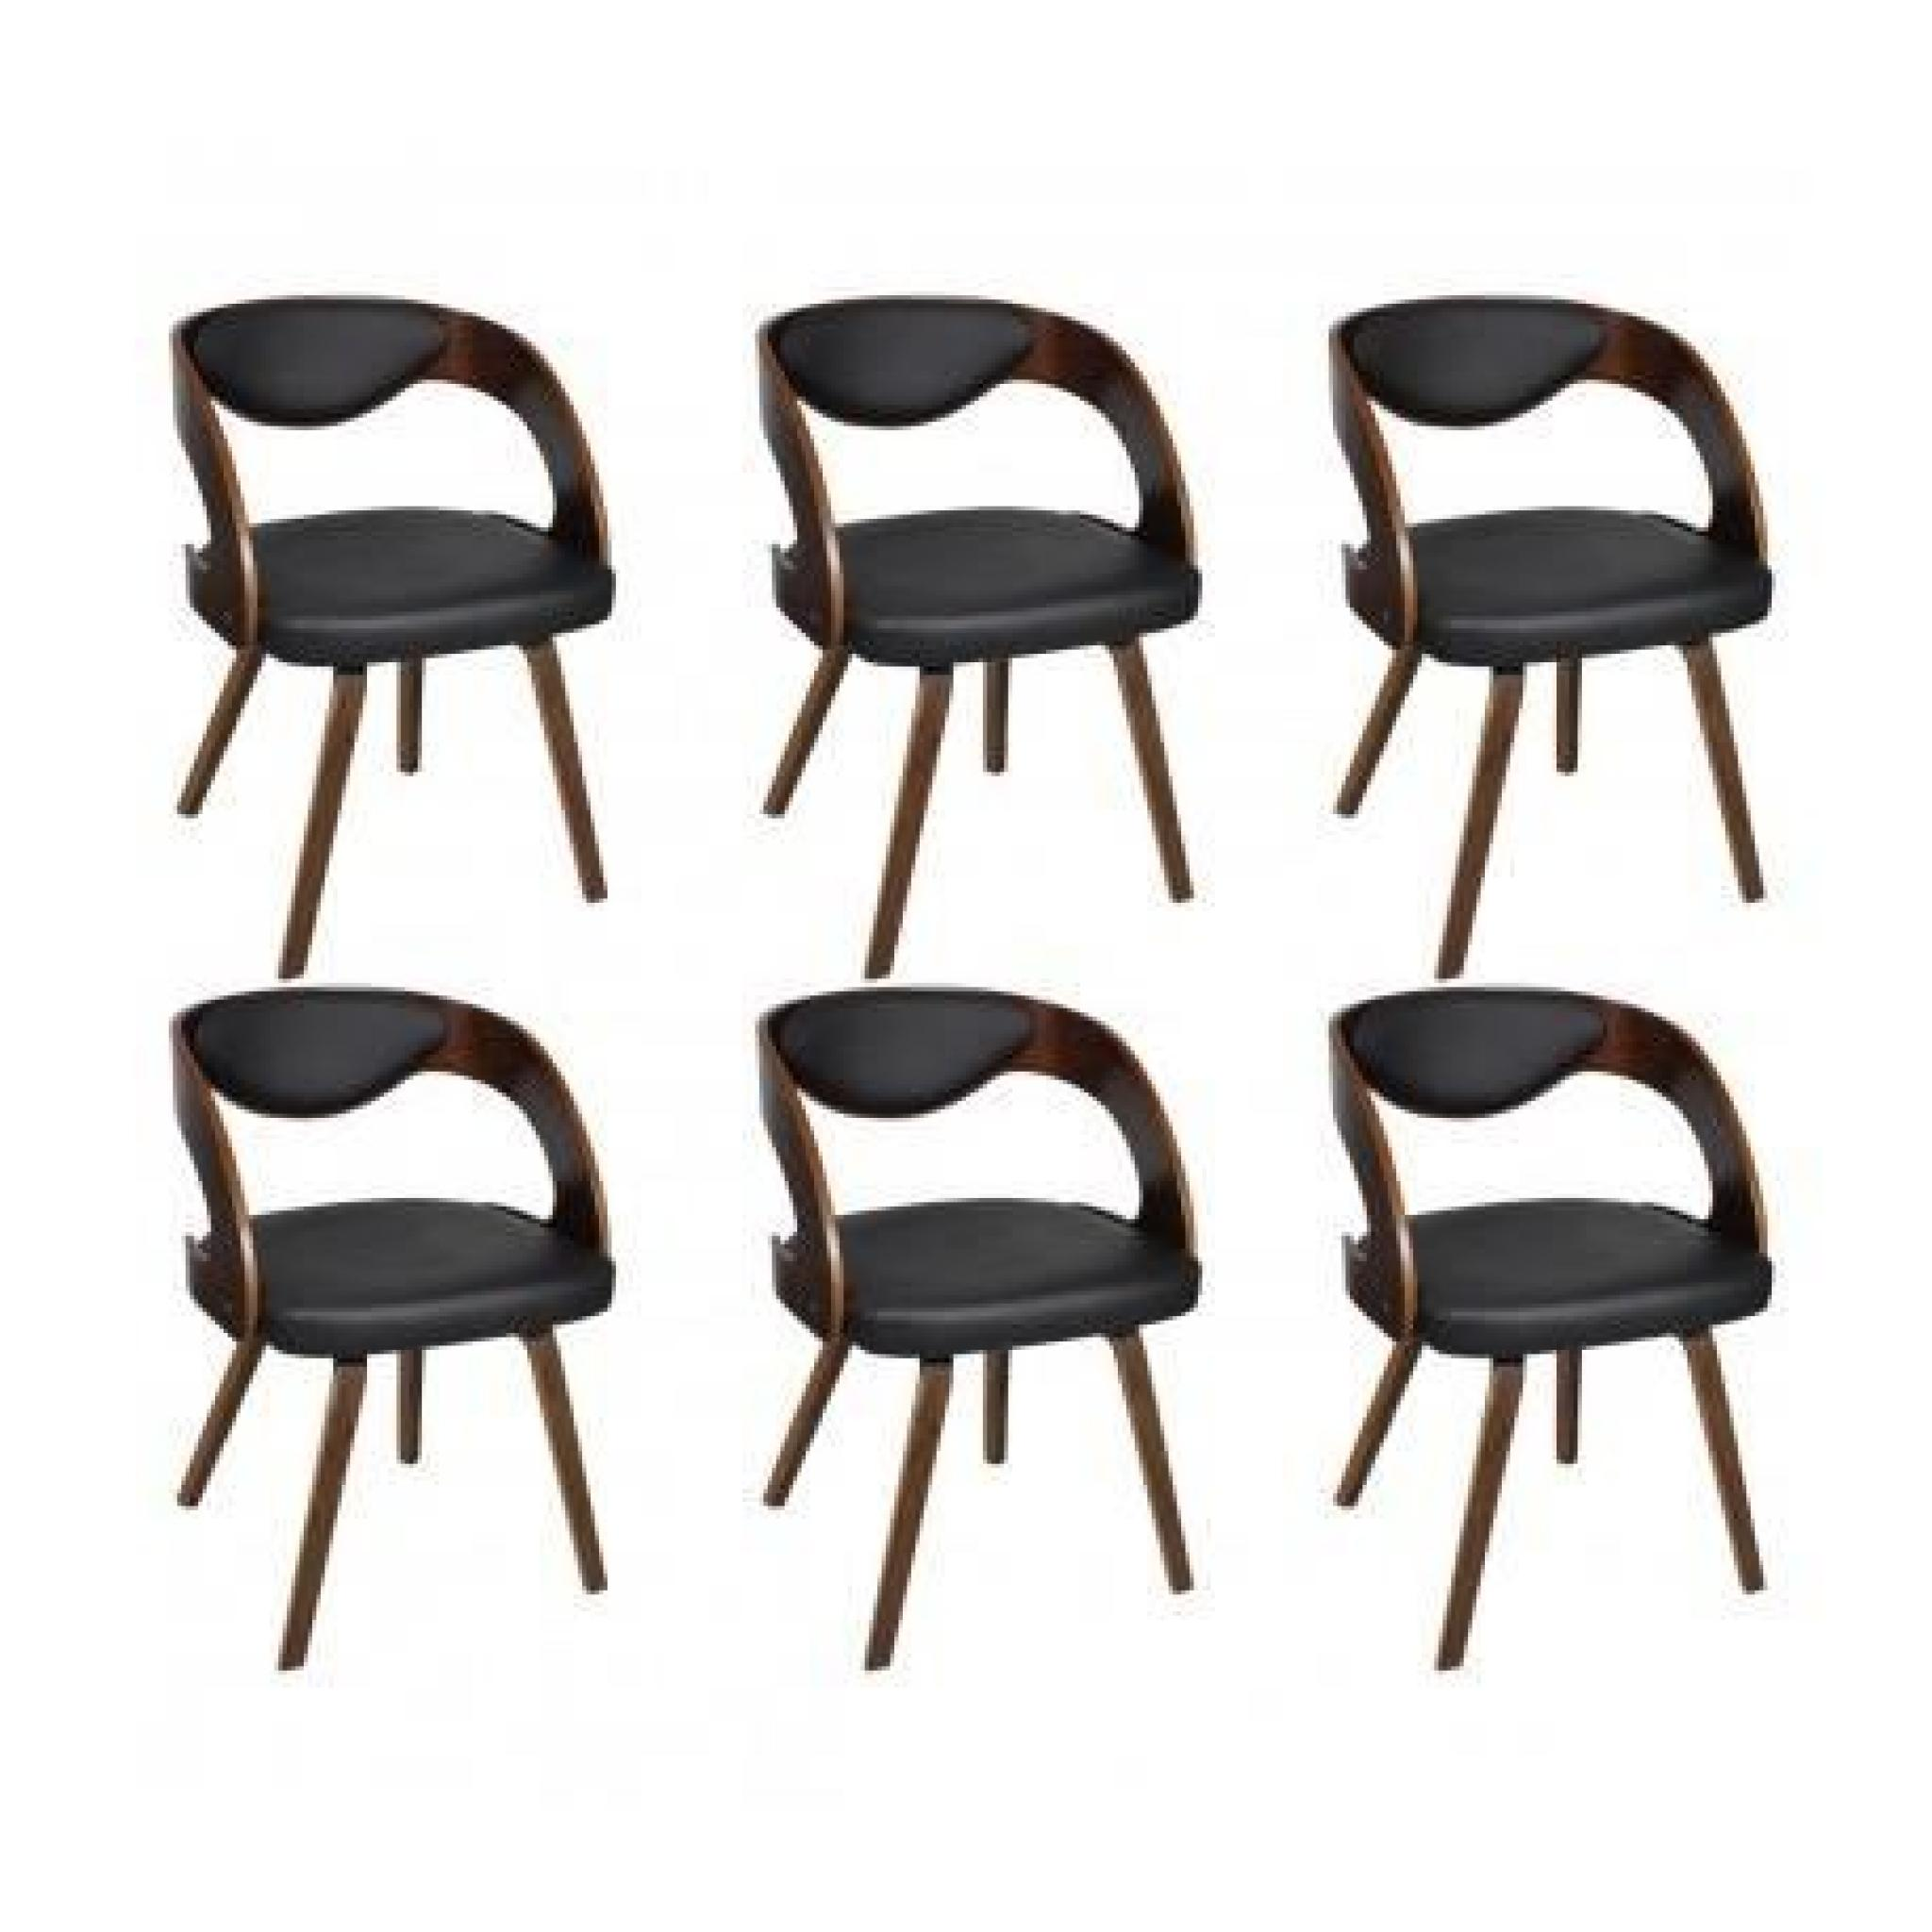 Chaises design de salon salle manger marron x4 maja for Chaise de salon design pas cher